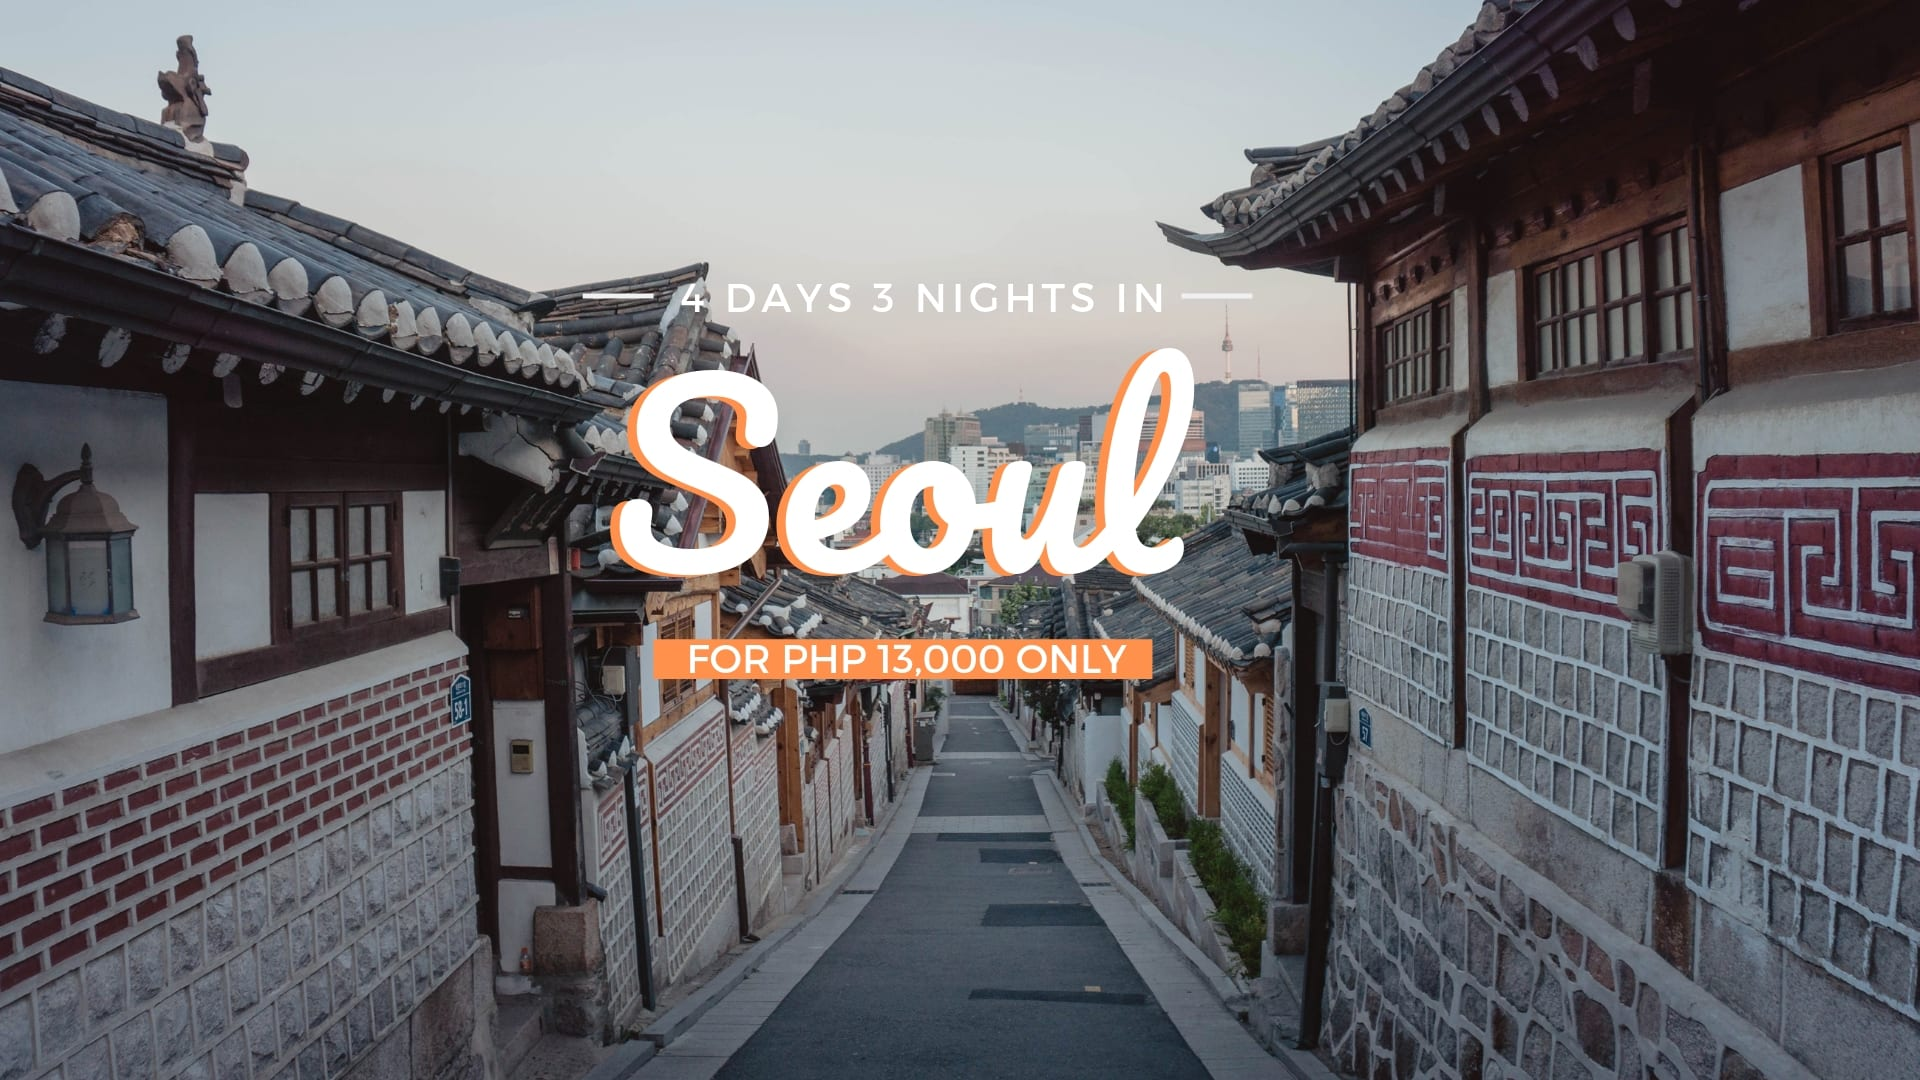 Ballin On A Budget 4d3n In South Korea For Php 13 000